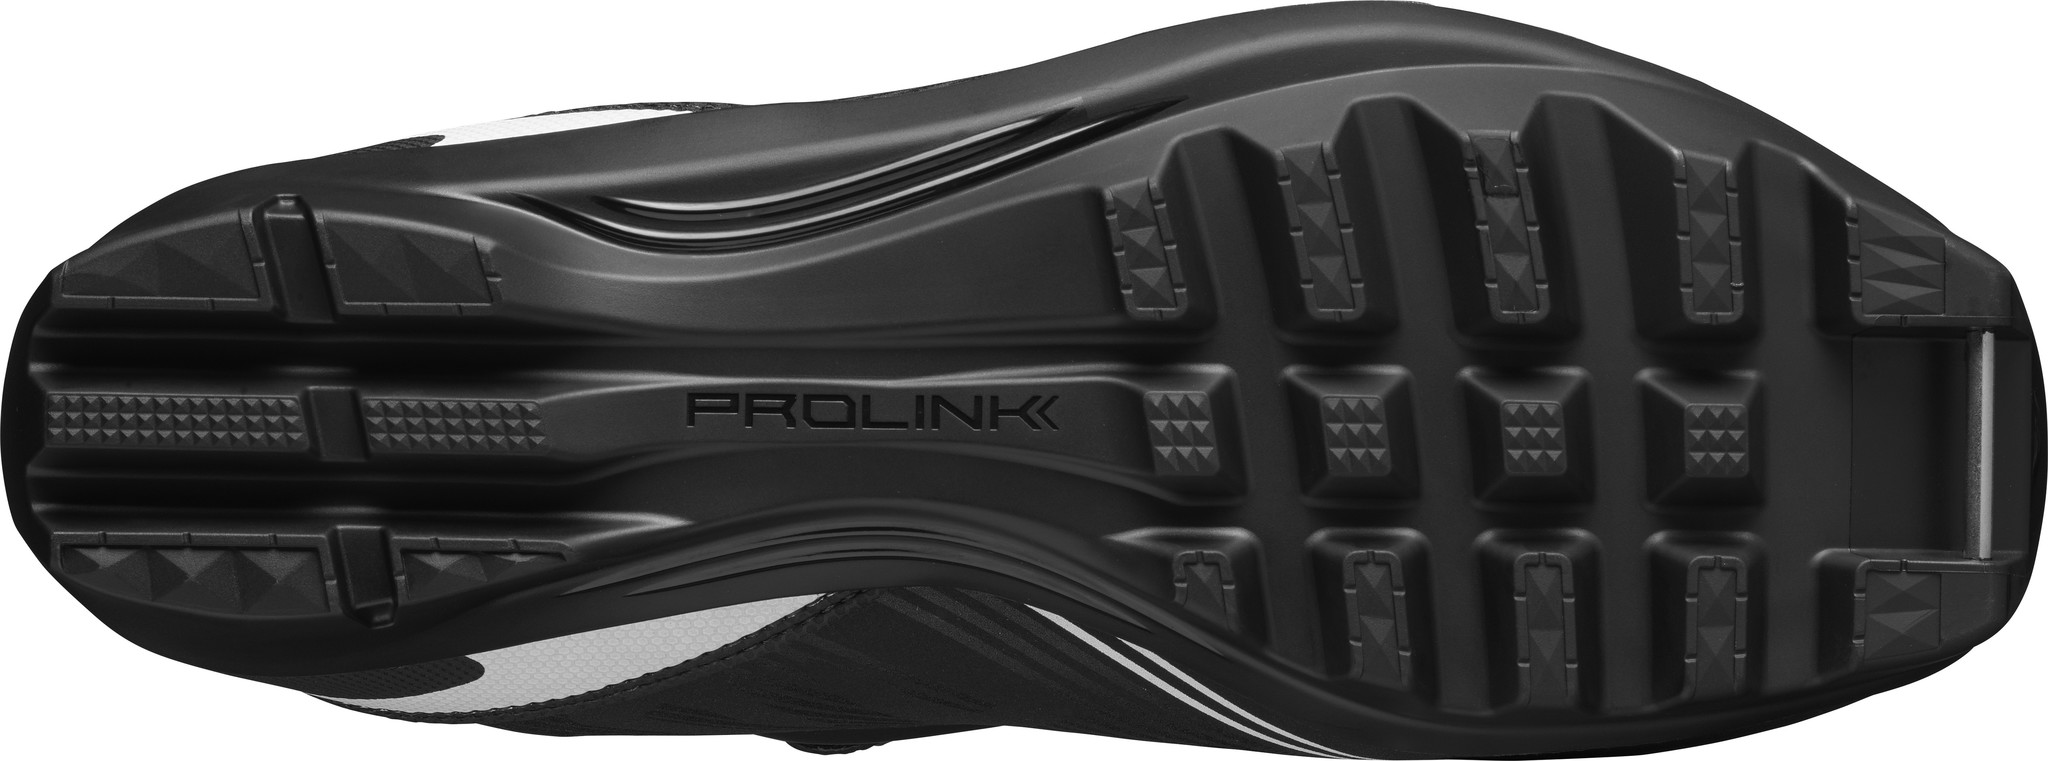 Salomon Escape Plus Prolink, Black/White